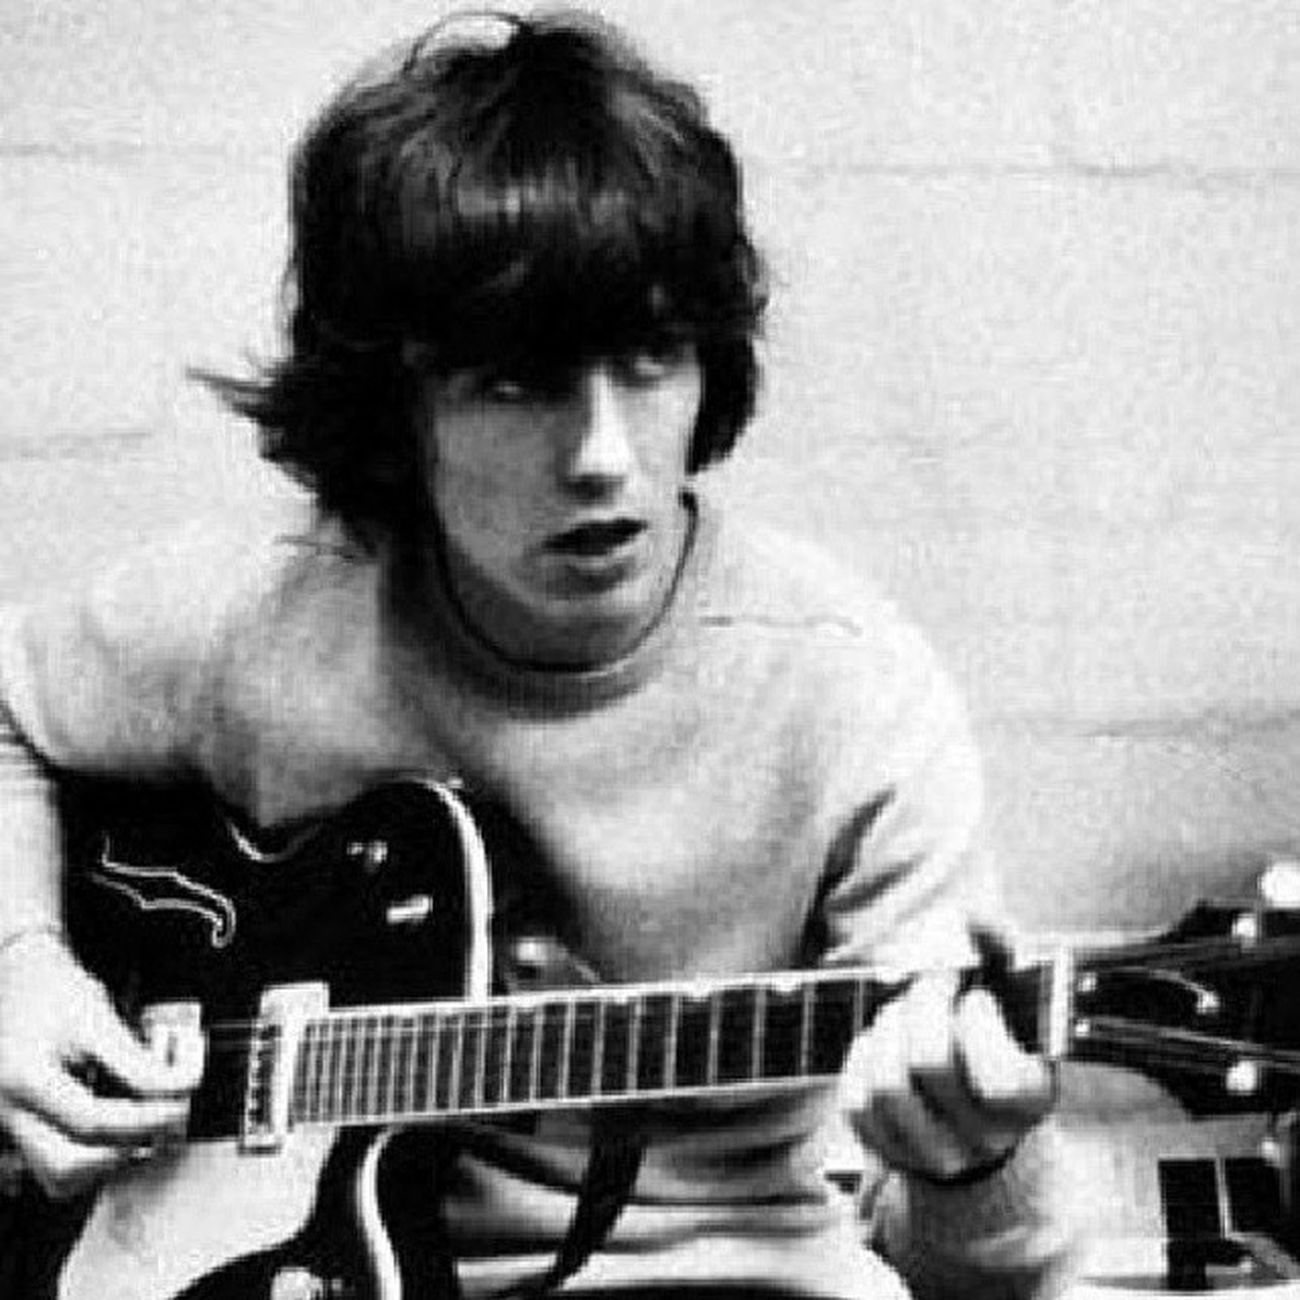 """all the world is a birthday cake, so take a piece... but not too much."" -George Harrison- (25 Şubat 1943 - 29 Kasım 2001) Rip GeorgeHarrison  29november Beatles inspiration rolemodel darkhorse whilemyguitargentlyweeps photooftheday"